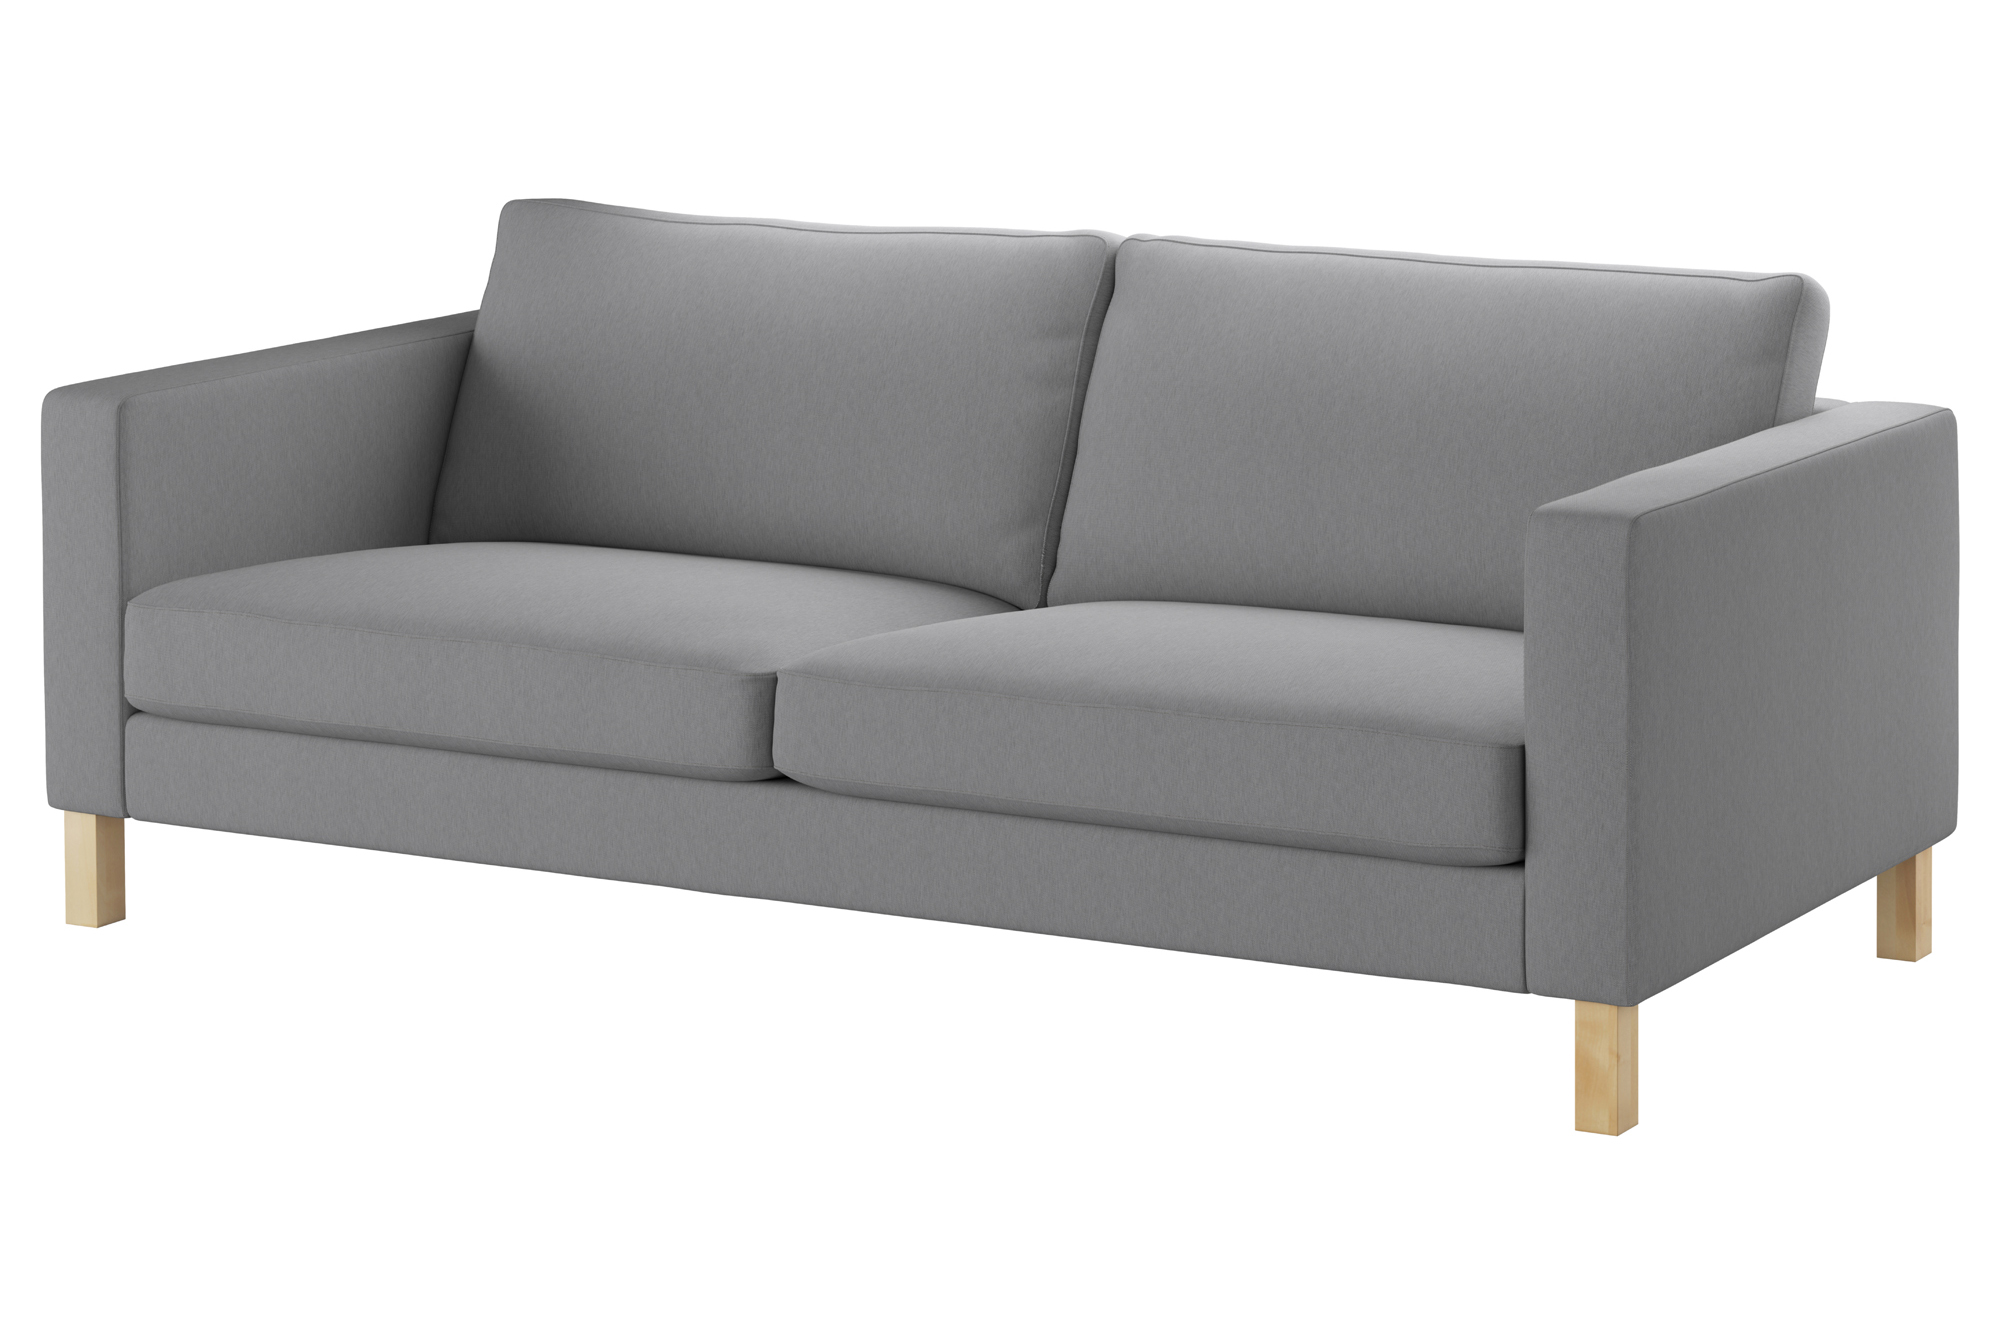 nok The Best & Most Comfortable IKEA Sofas | Apartment Therapy DS99